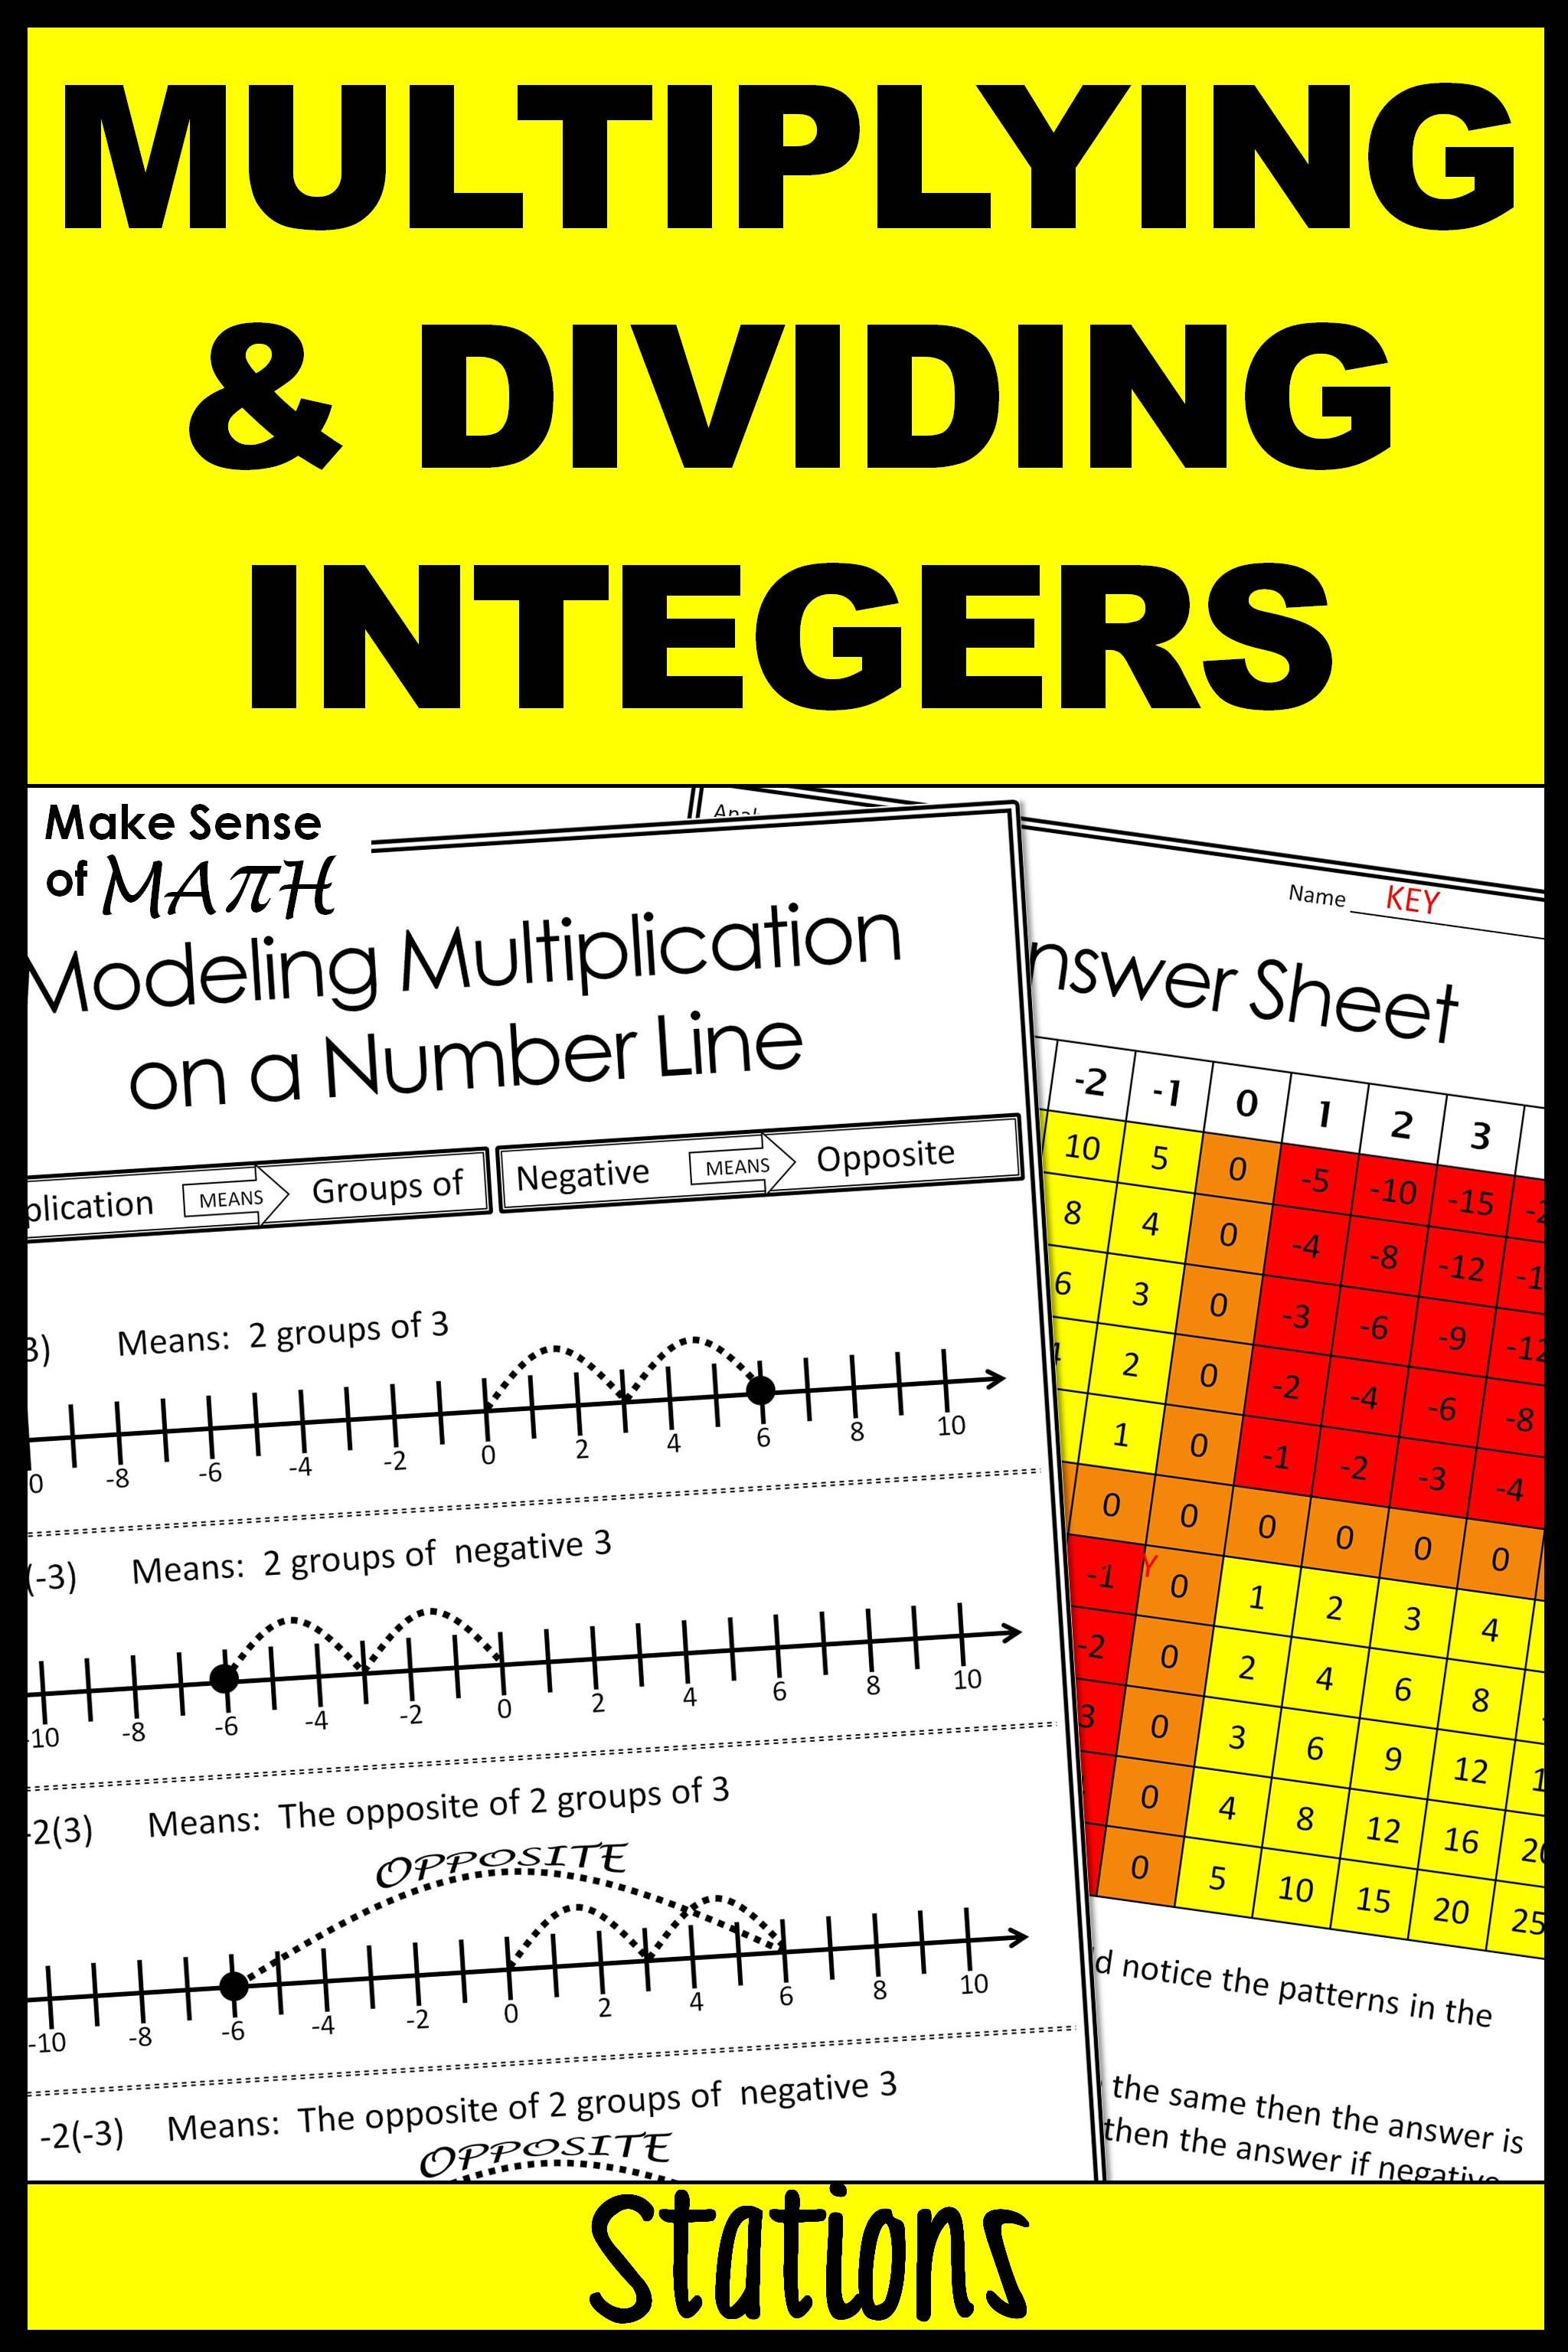 Multiplying And Dividing Integers Stations With Images